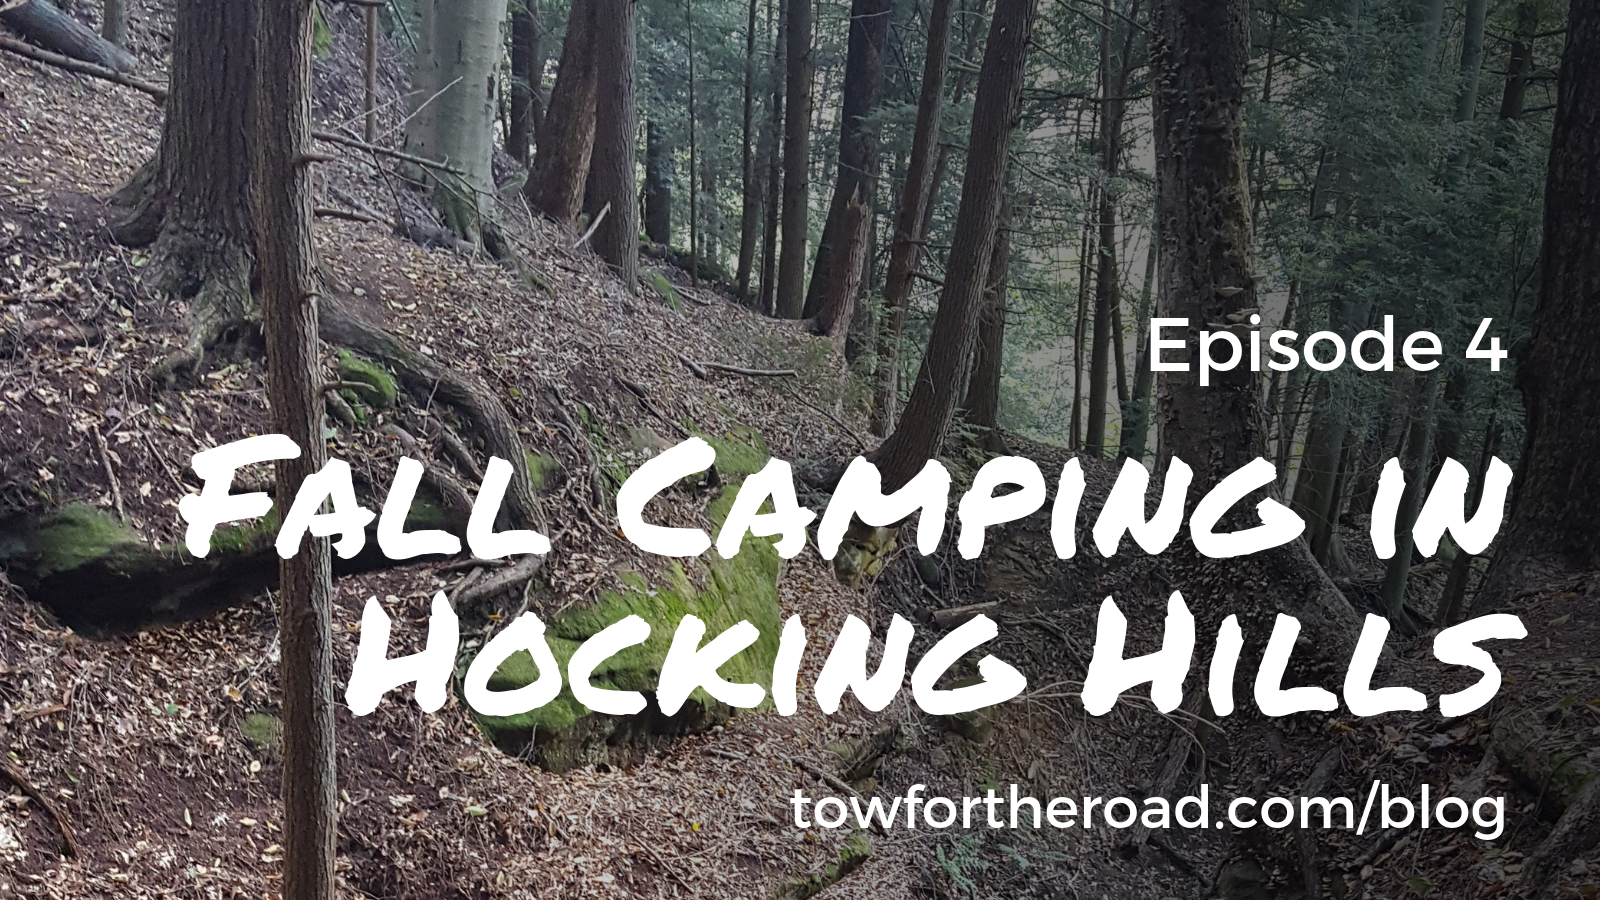 Tow for the Road Episode 4 - Hocking Hills.png